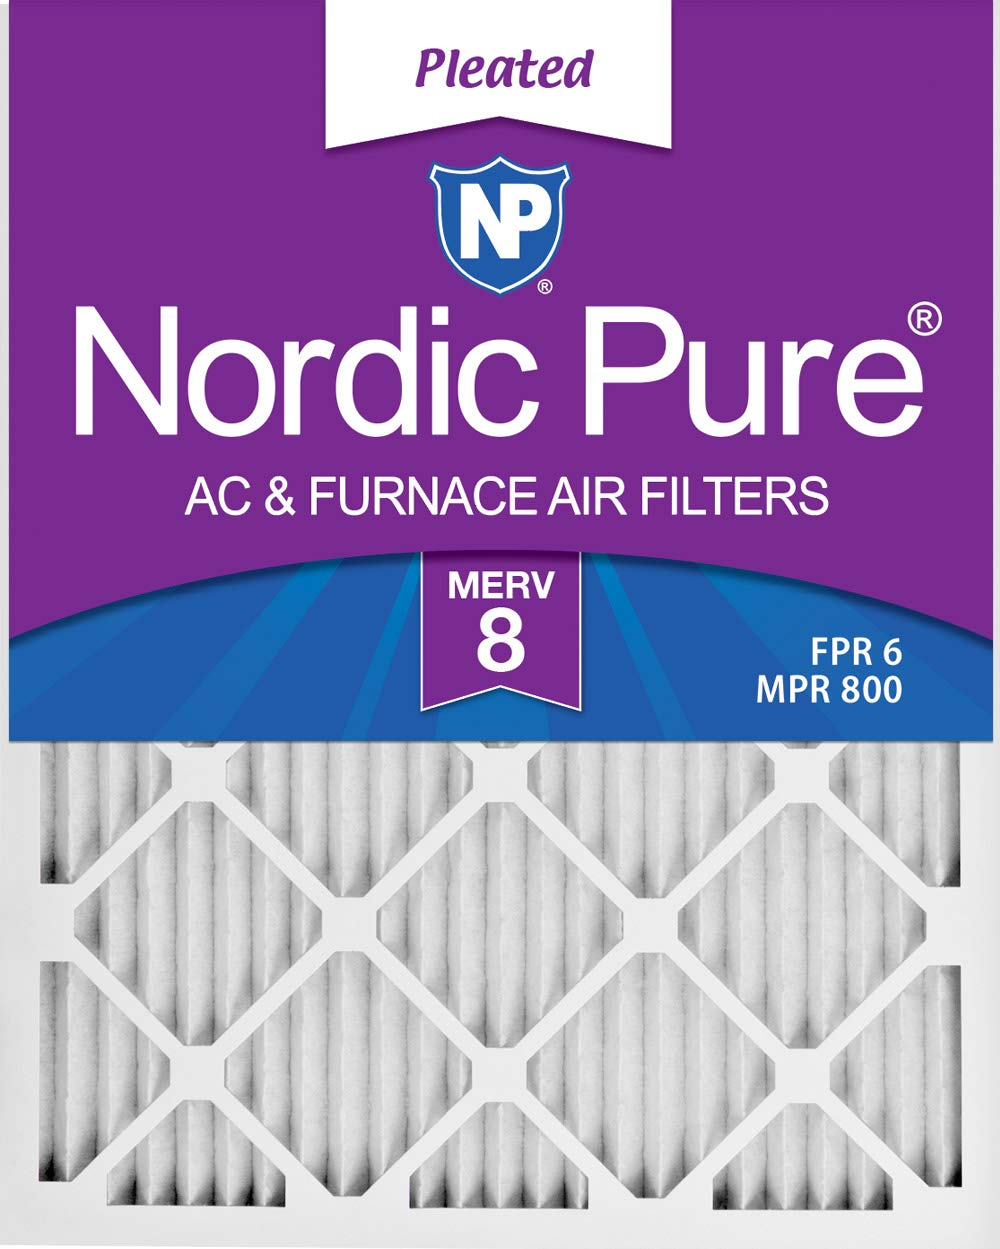 Nordic Pure 12x18x1 Exact MERV 8 Pleated AC Furnace Air Filters 4 Pack